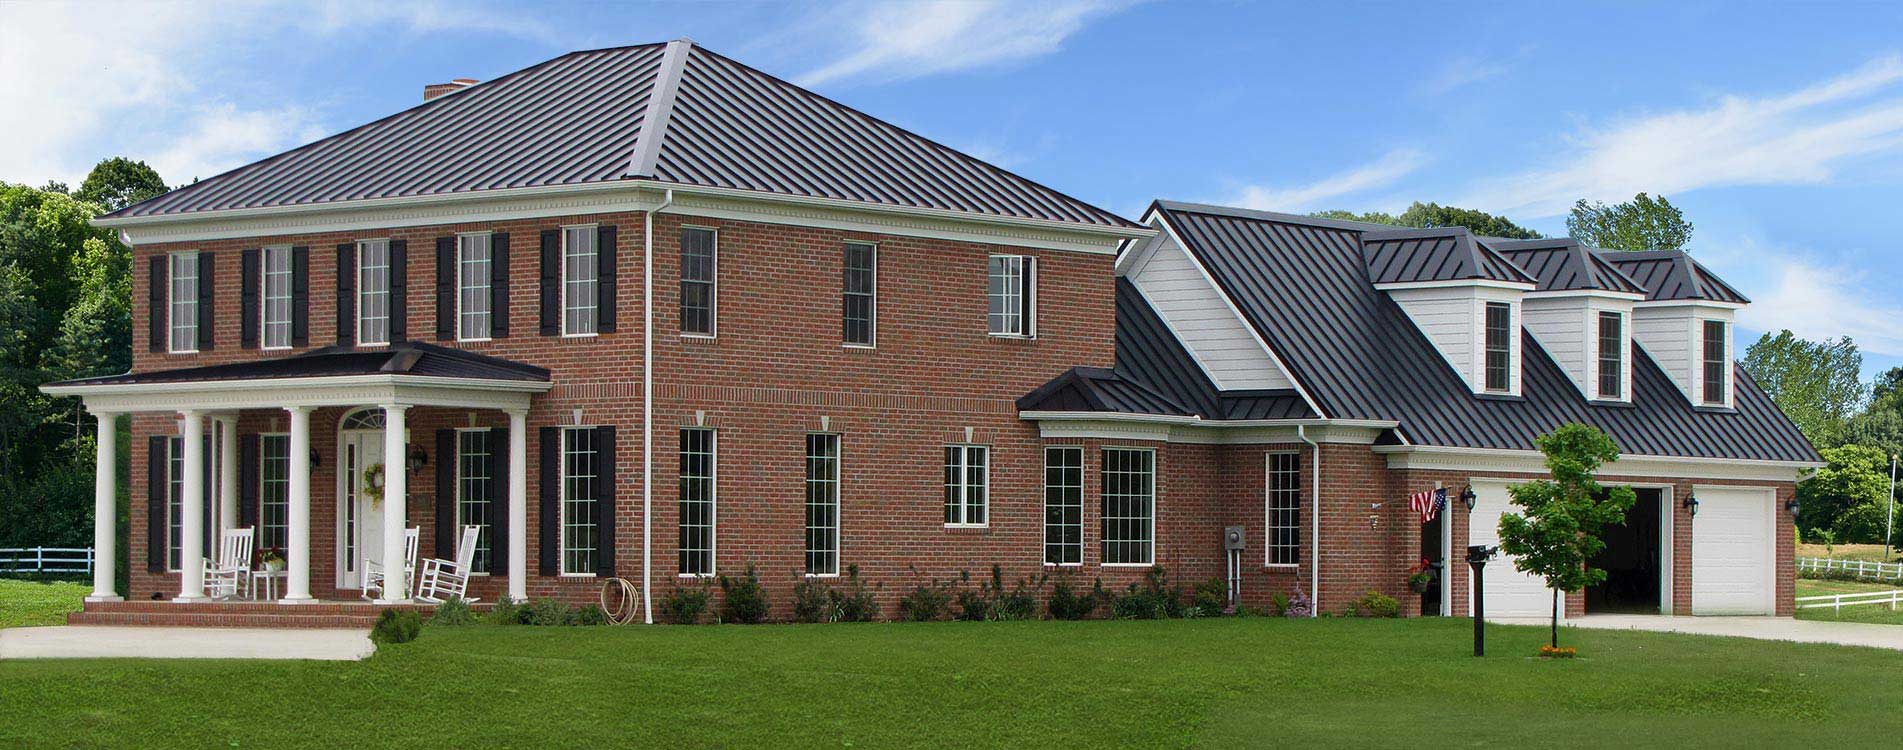 Ohio Metal Roofing Metal Siding And Metal Trim For New Homes